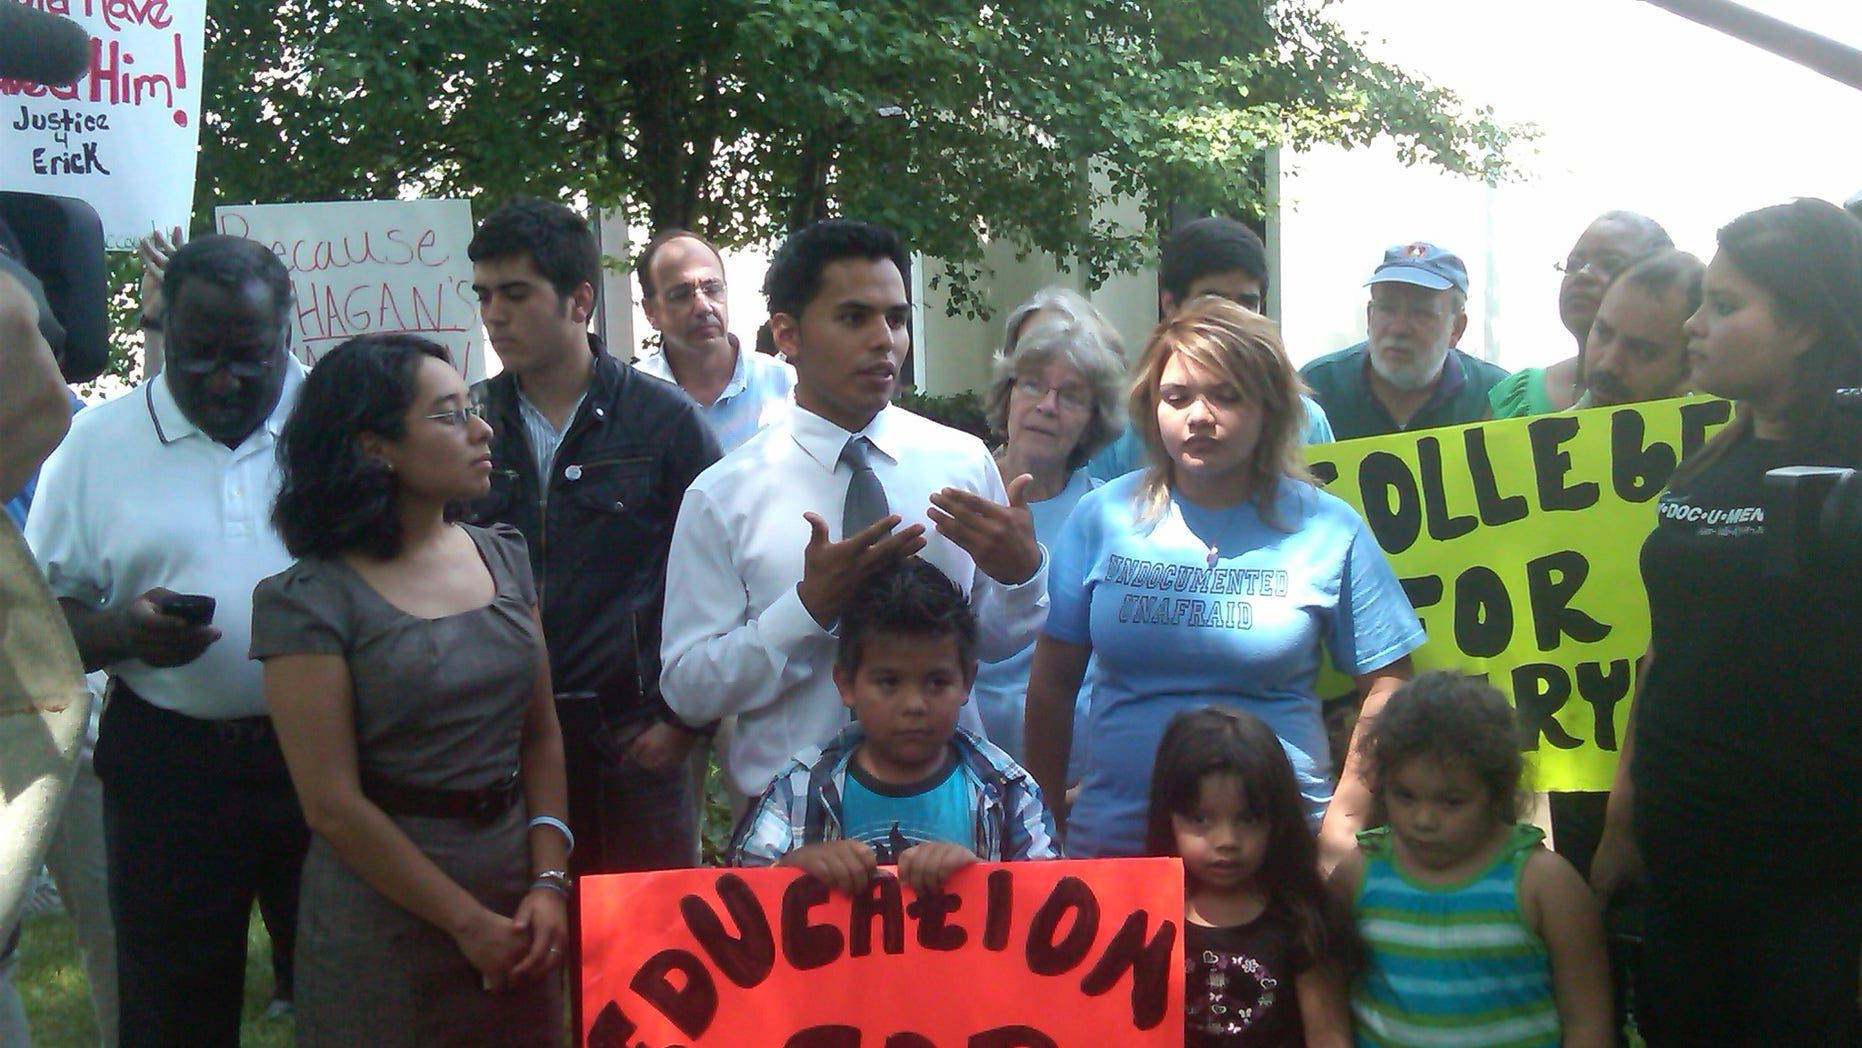 Erick Velazquillo, center wearing a tie, responds to a decision following a Charlotte, N.C., deportation hearing.